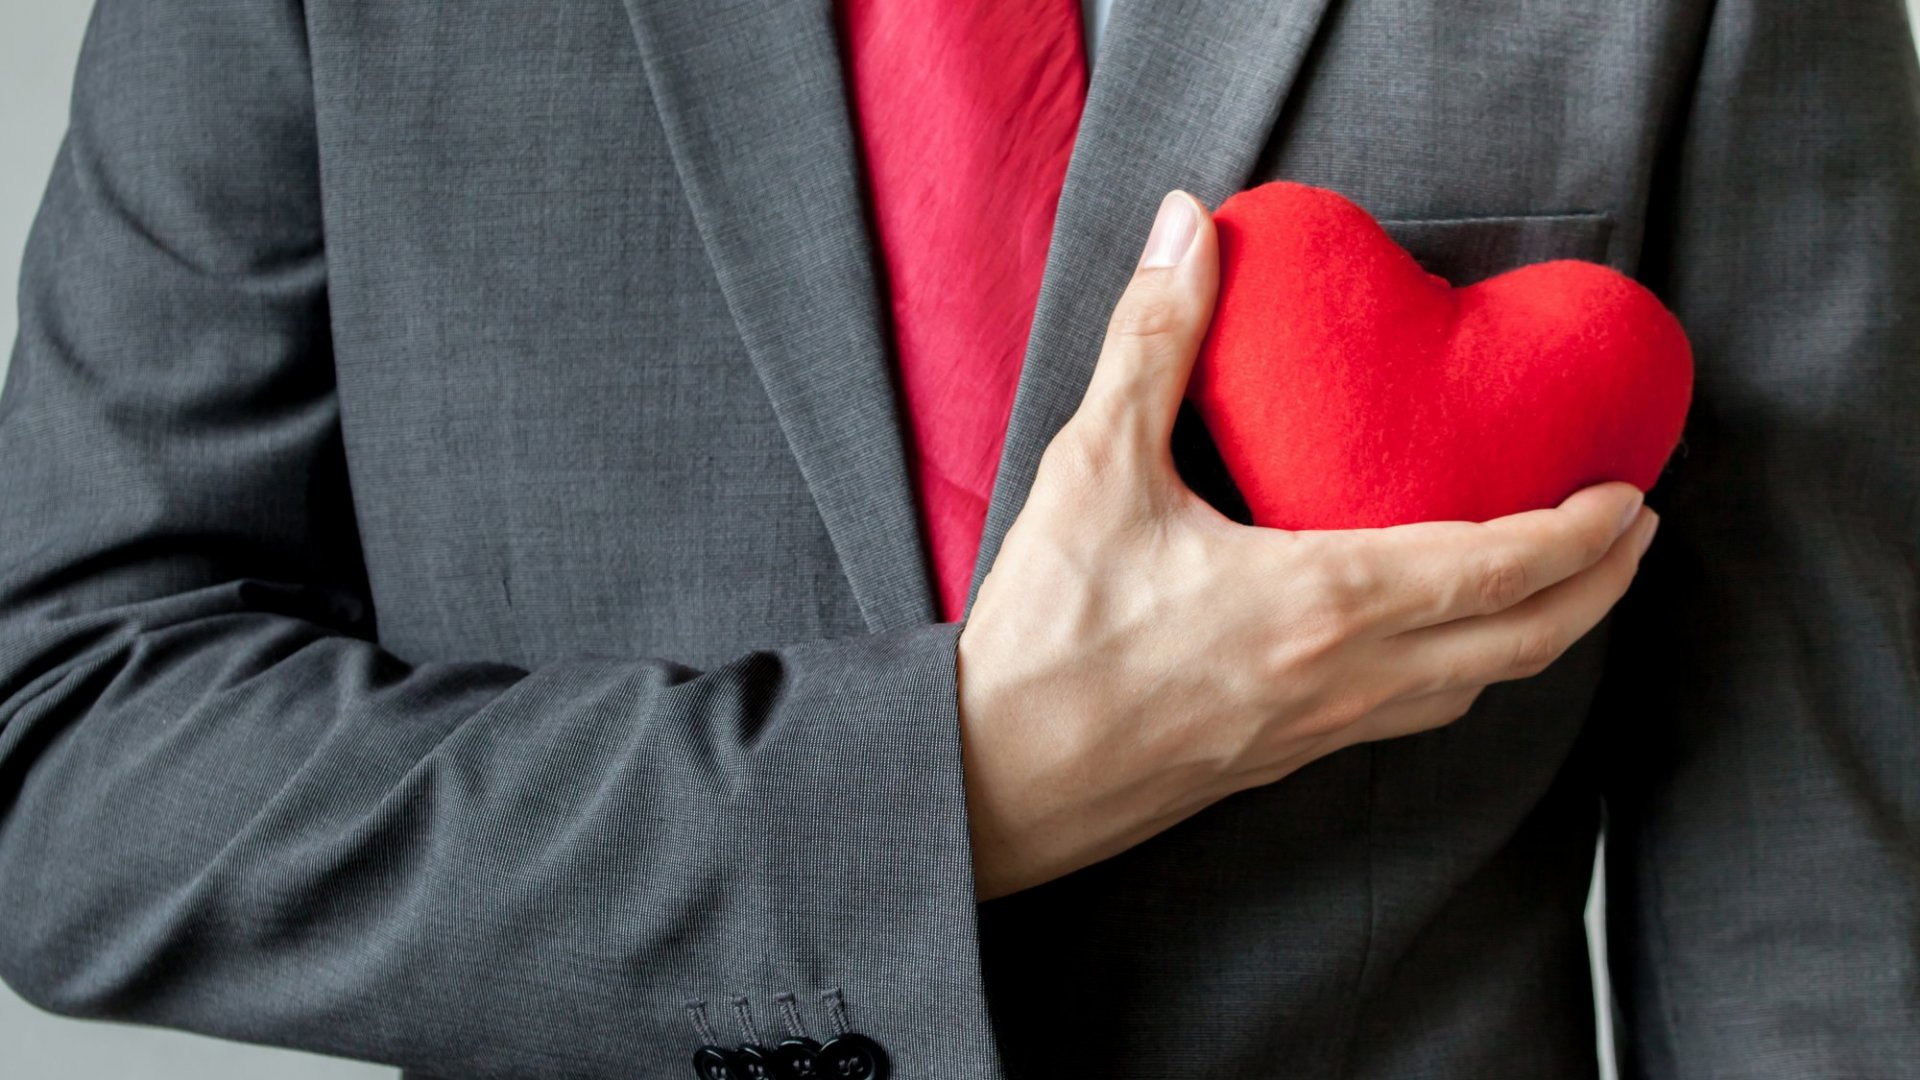 Is Your Leadership Brand Love or Respect?  Which Should it Be?